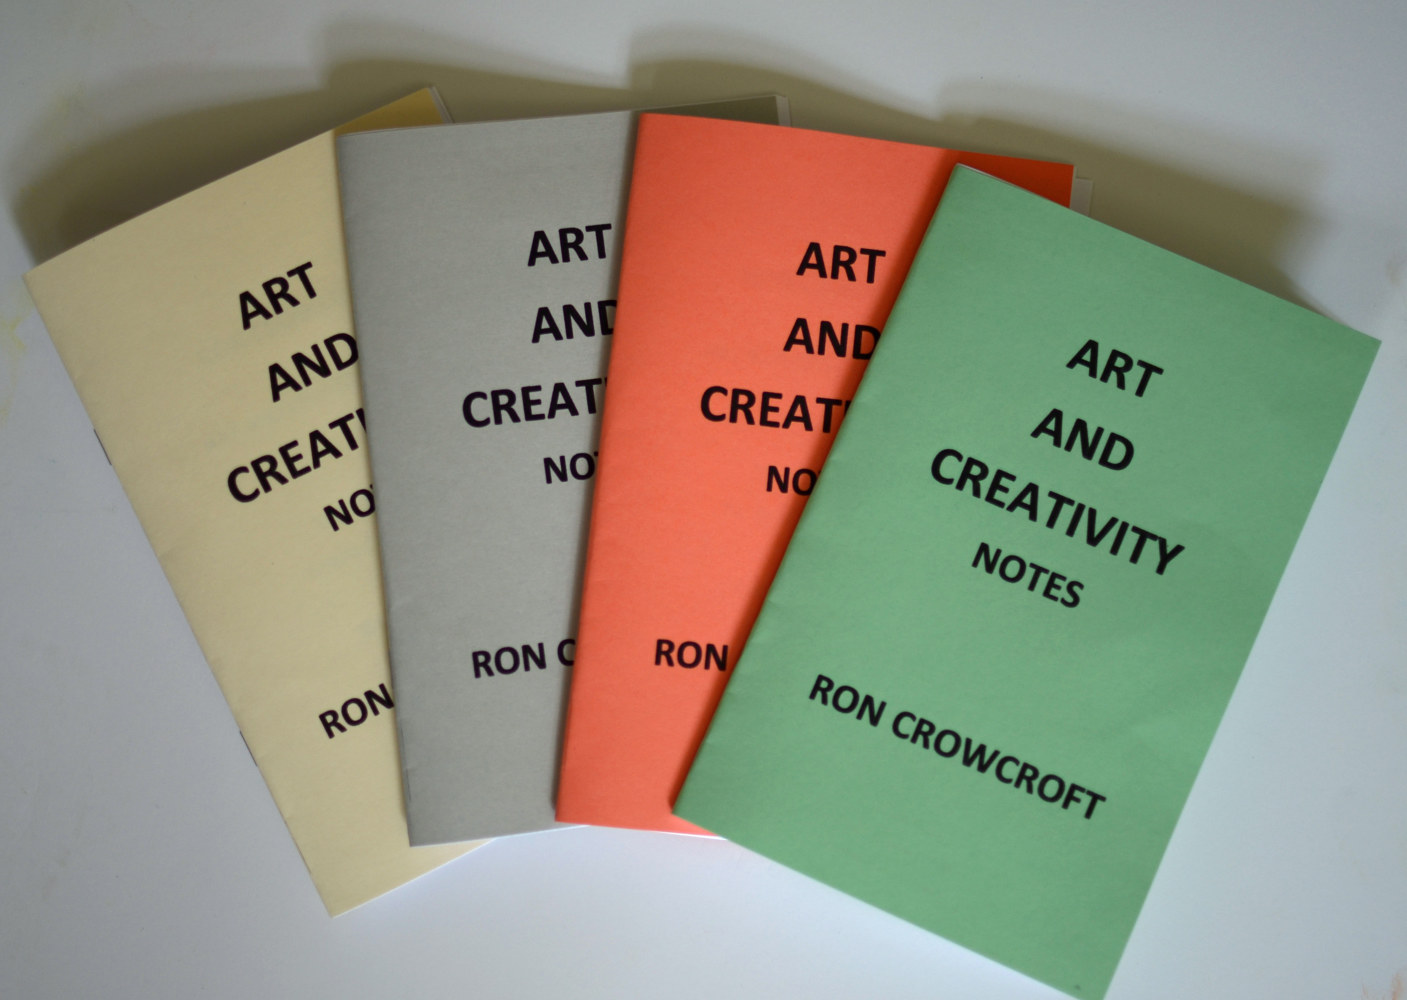 art and creativity notes booklets third edition covers by Ron Crowcroft